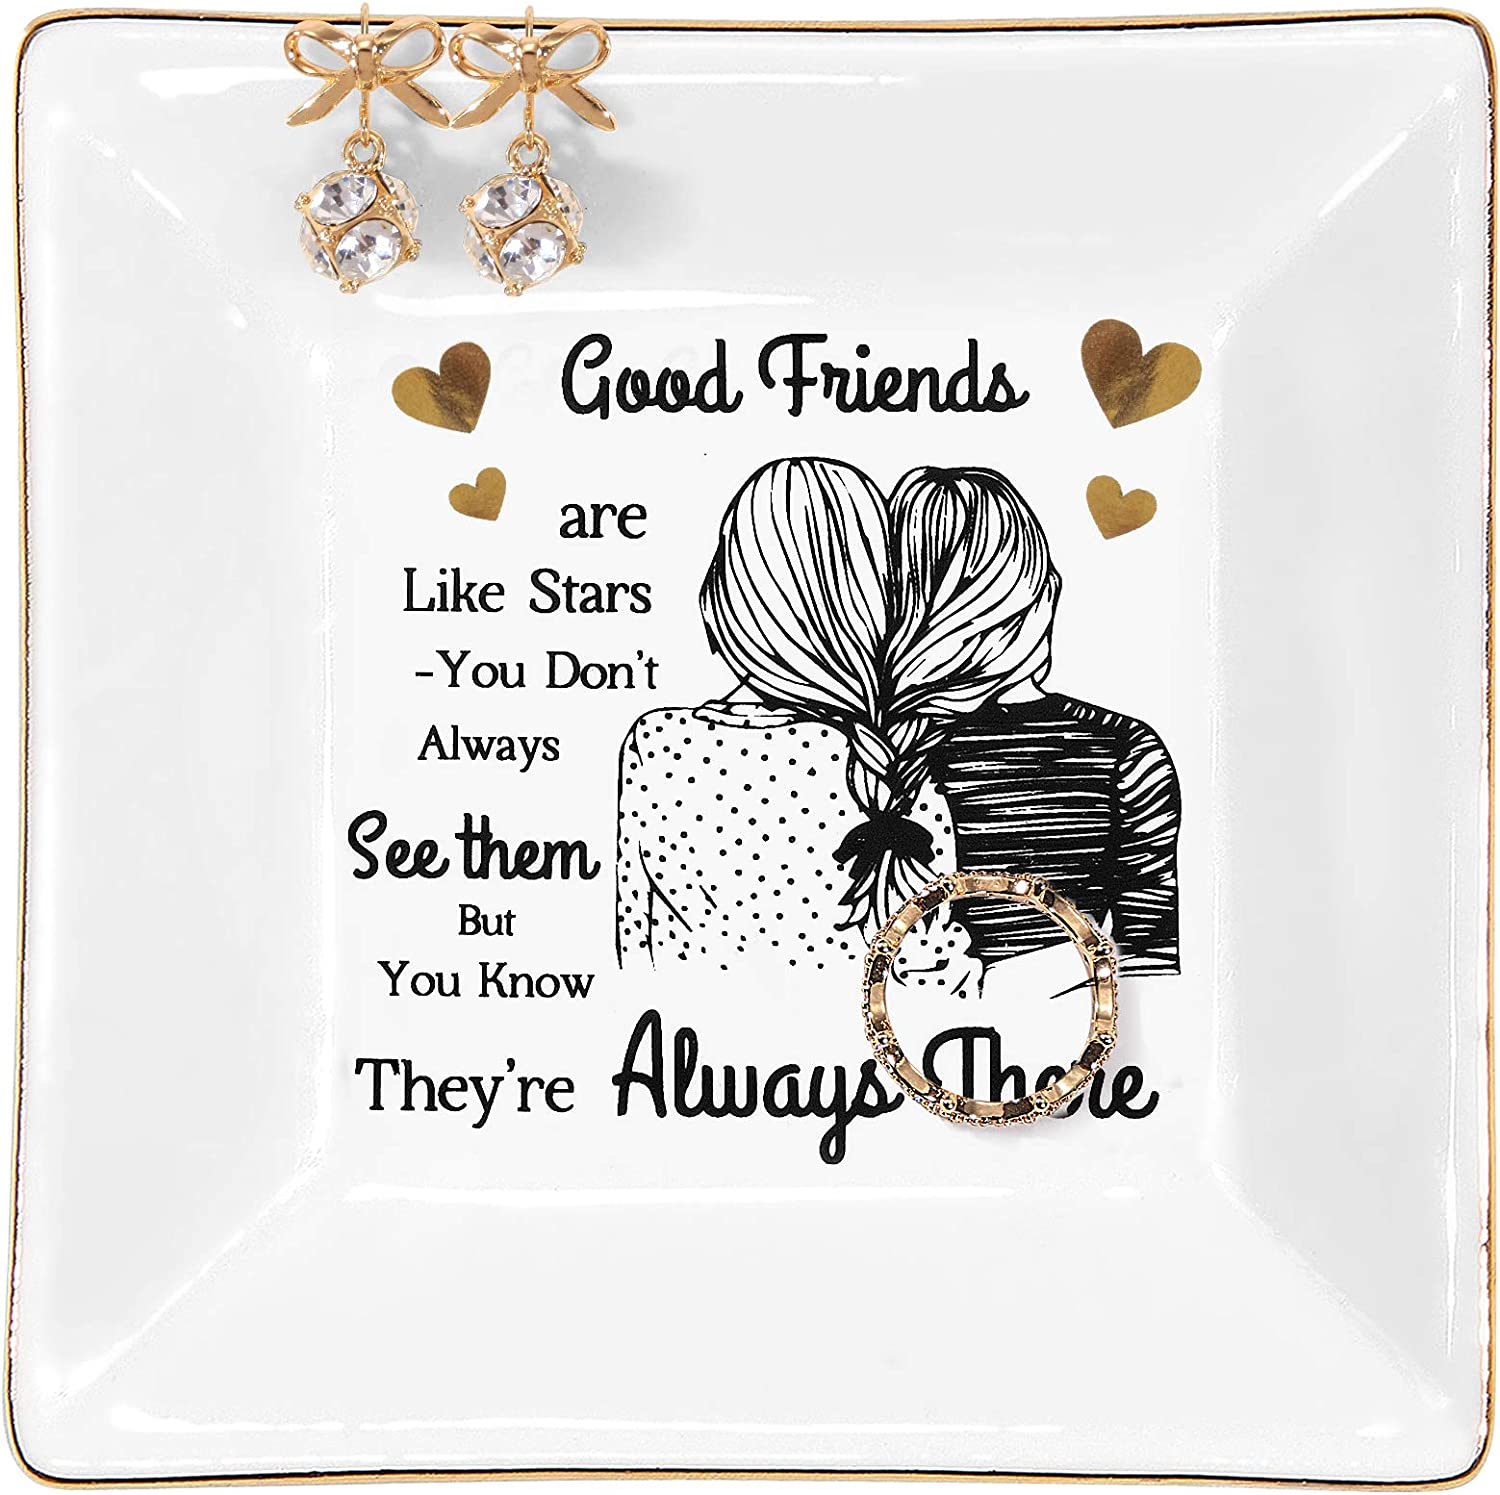 HONZZ Gifts for Women Coworker Female Friend Thank You Gift for Birthday Friendship Gifts Customized Gifts for Best Friends Under 10 Dollars Inspirational for Woman Thinking of You Present